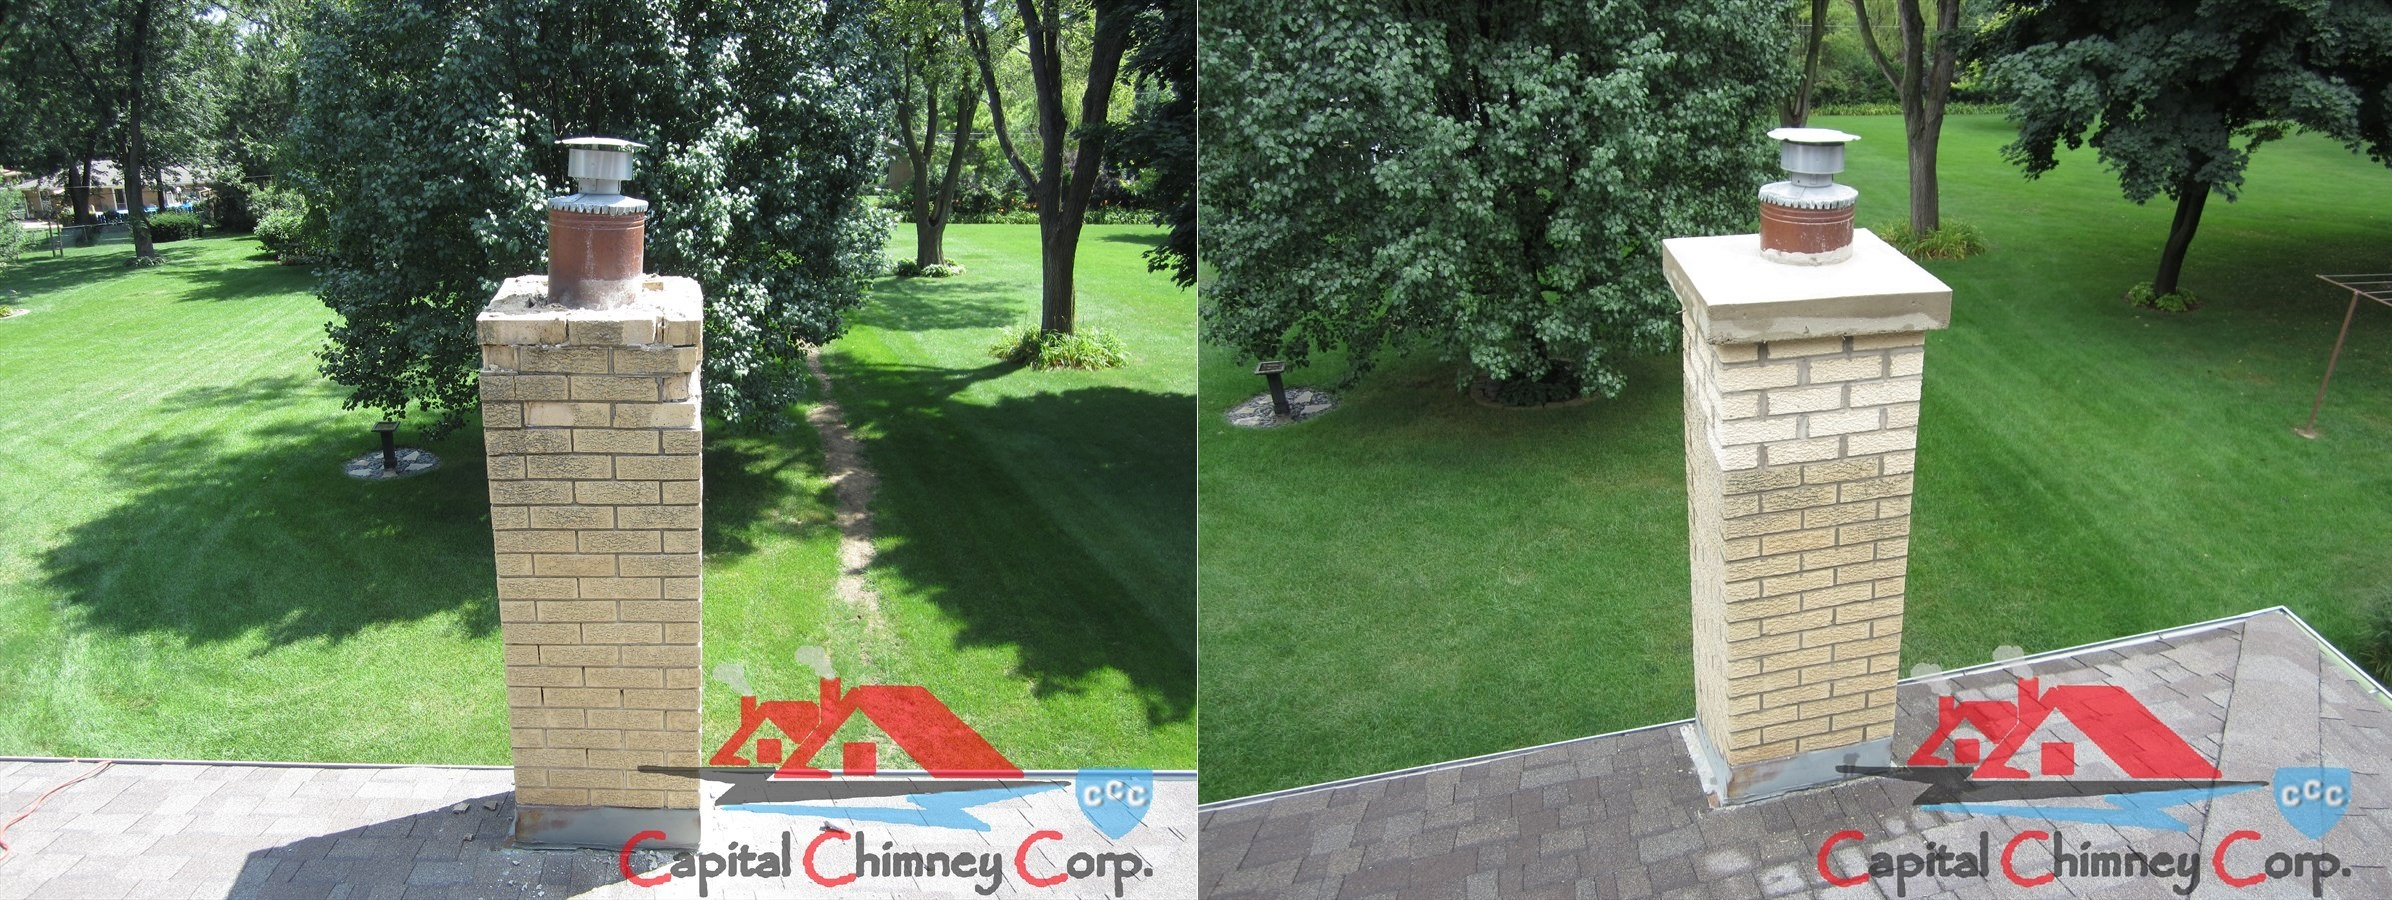 Before and After Tuckpointed Chimney